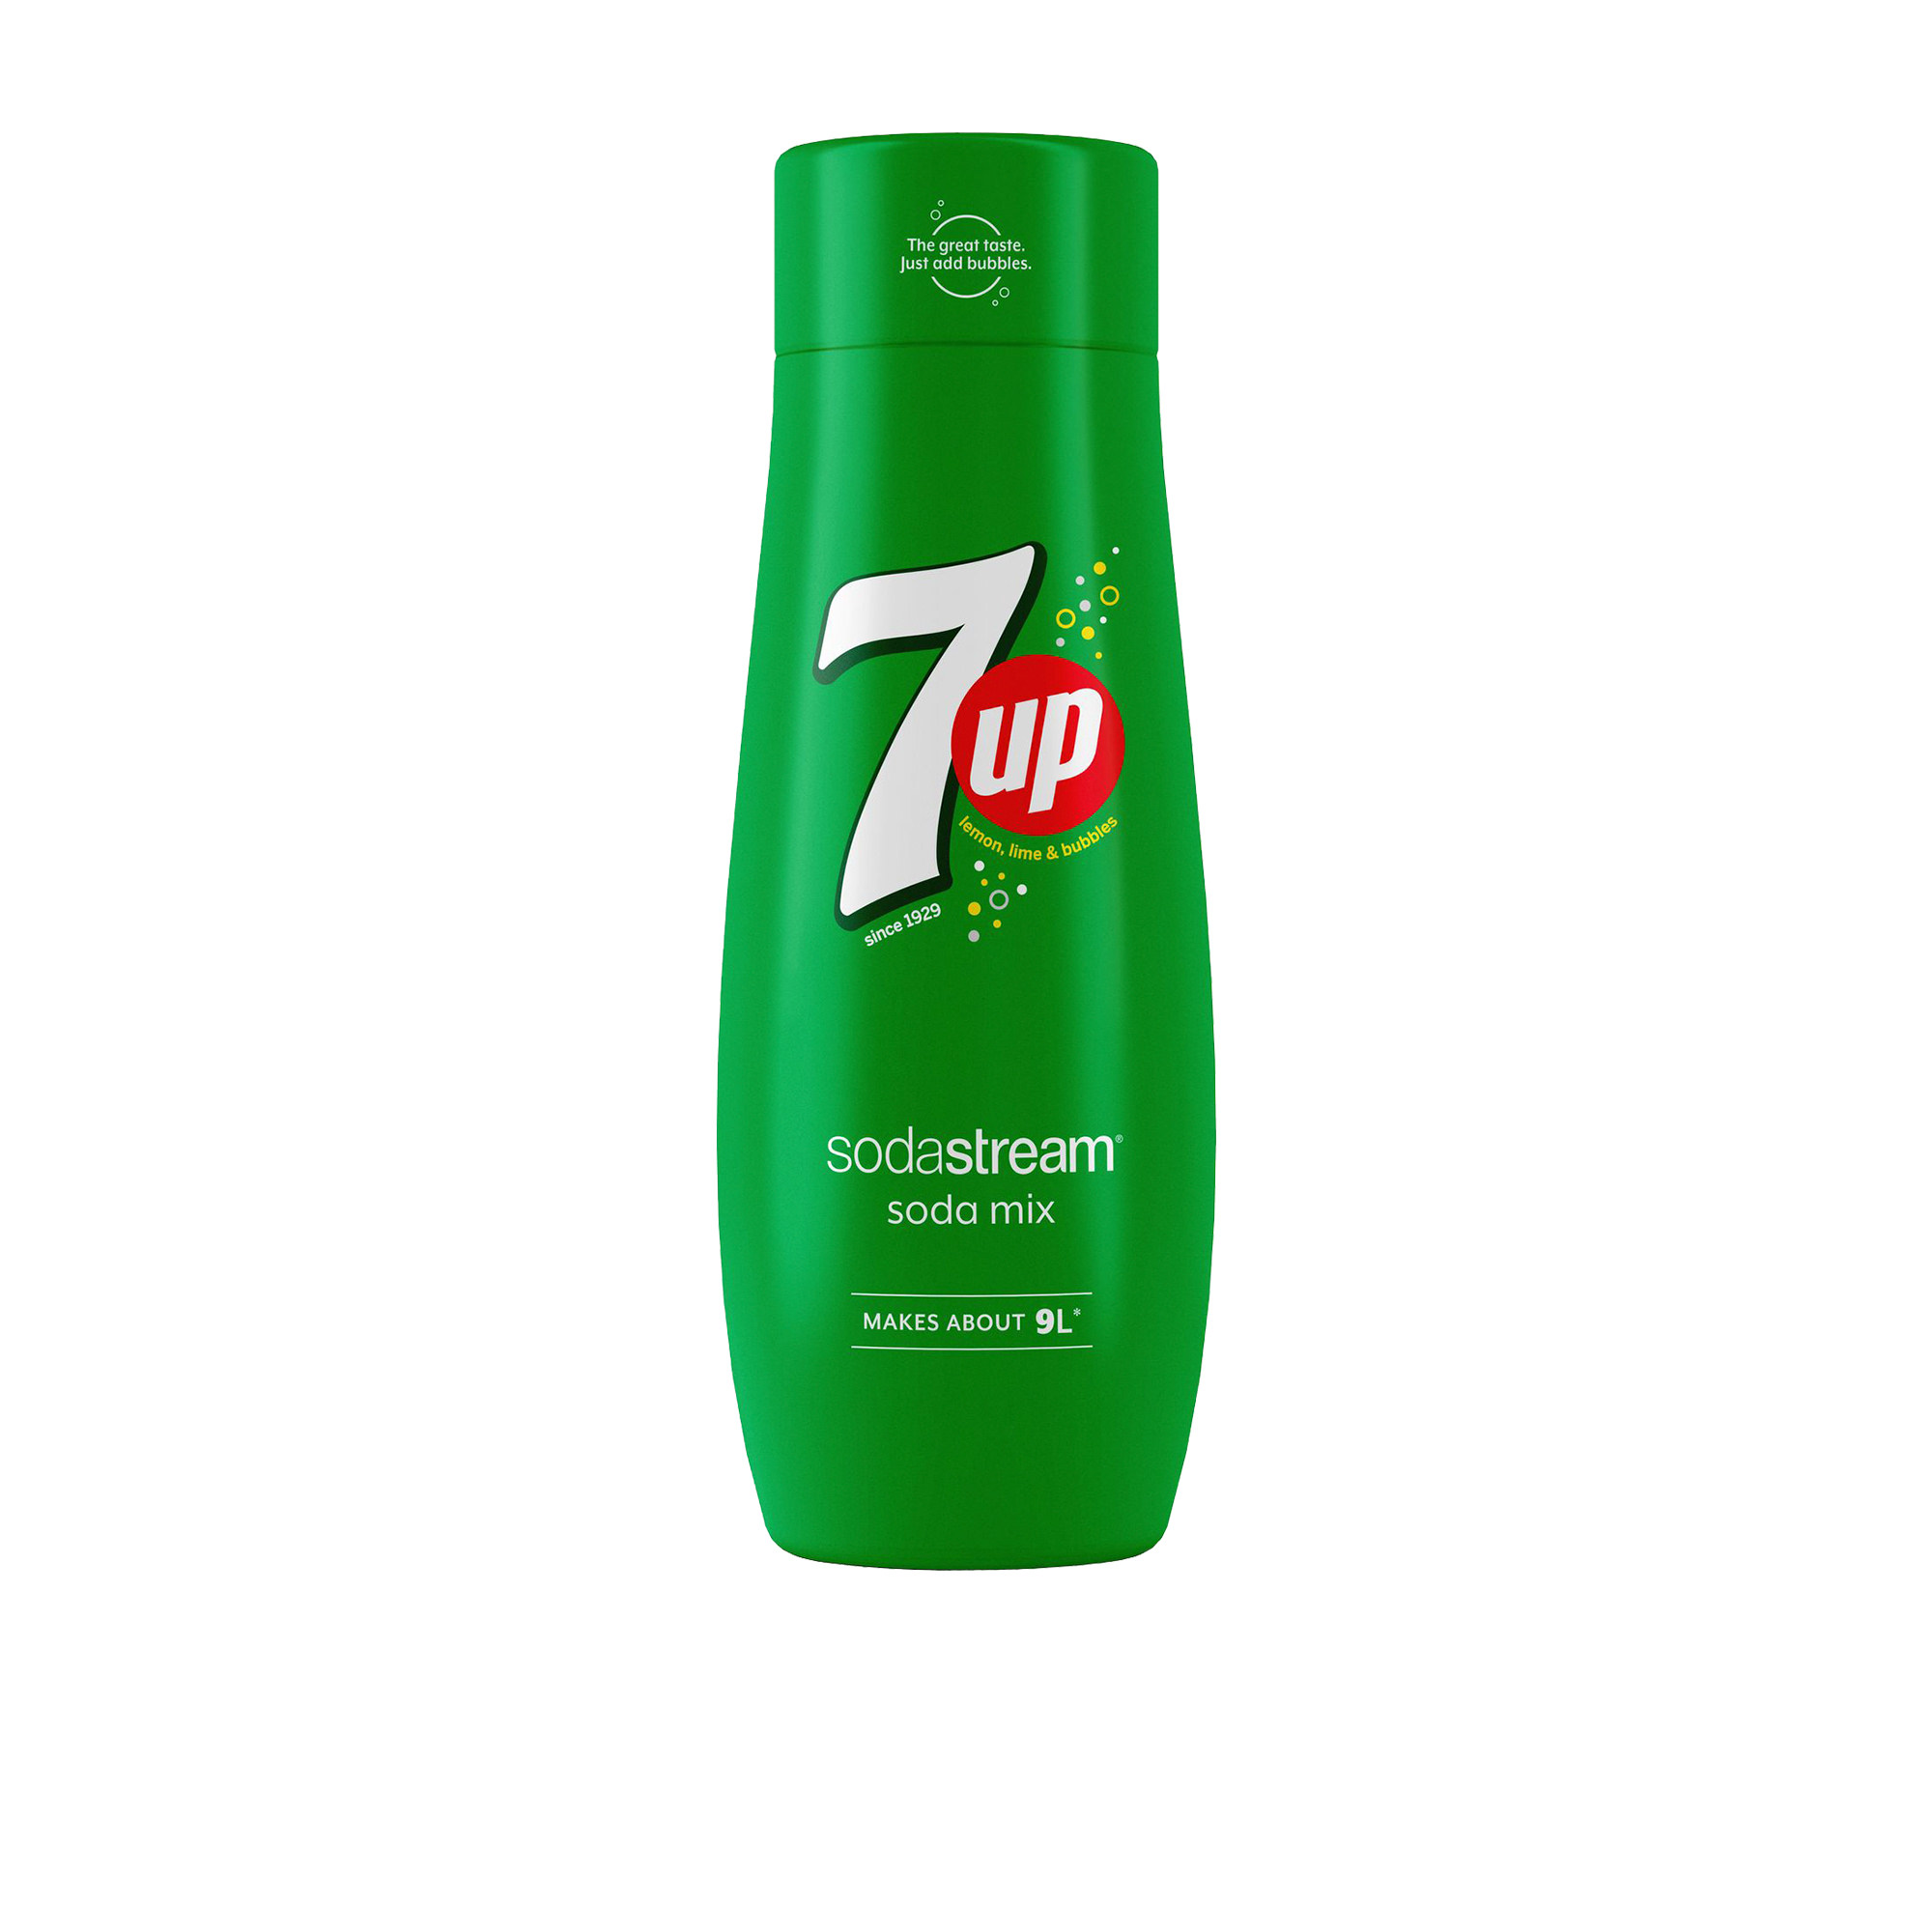 SodaStream Soda Mix Syrup 7UP Flavour